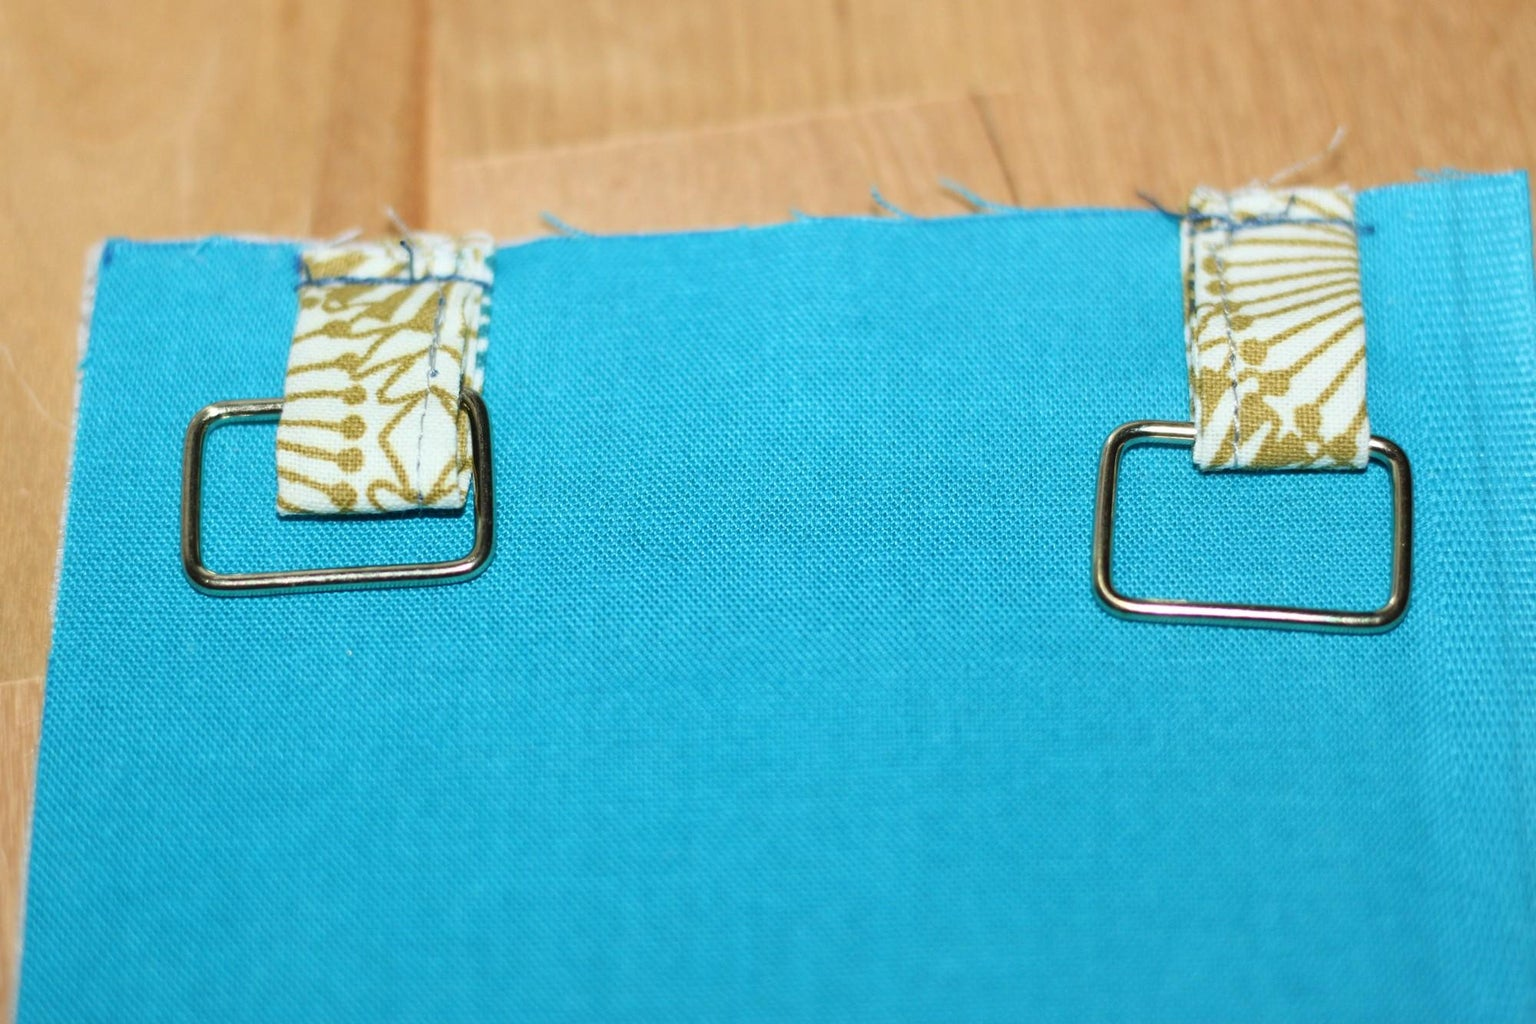 Attaching the Loops and Flap